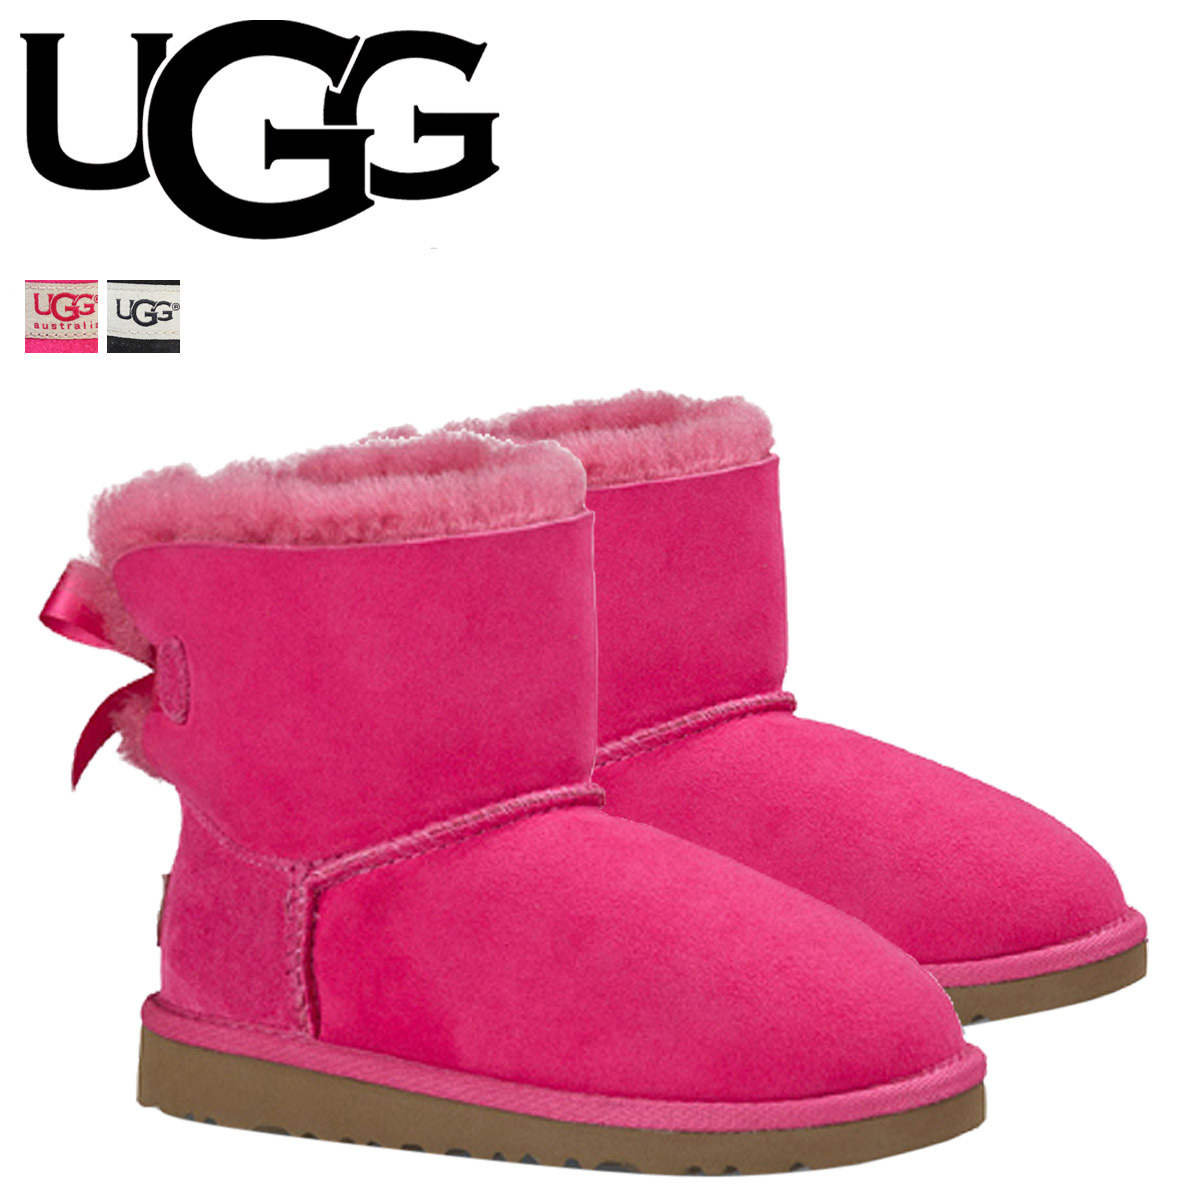 d1f9a365741 UGG Ugg Classic mini Sheepskin boots kids MINI BAILEY BOW 1005497T  Sheepskin toddler [10 / 31 new in stock]